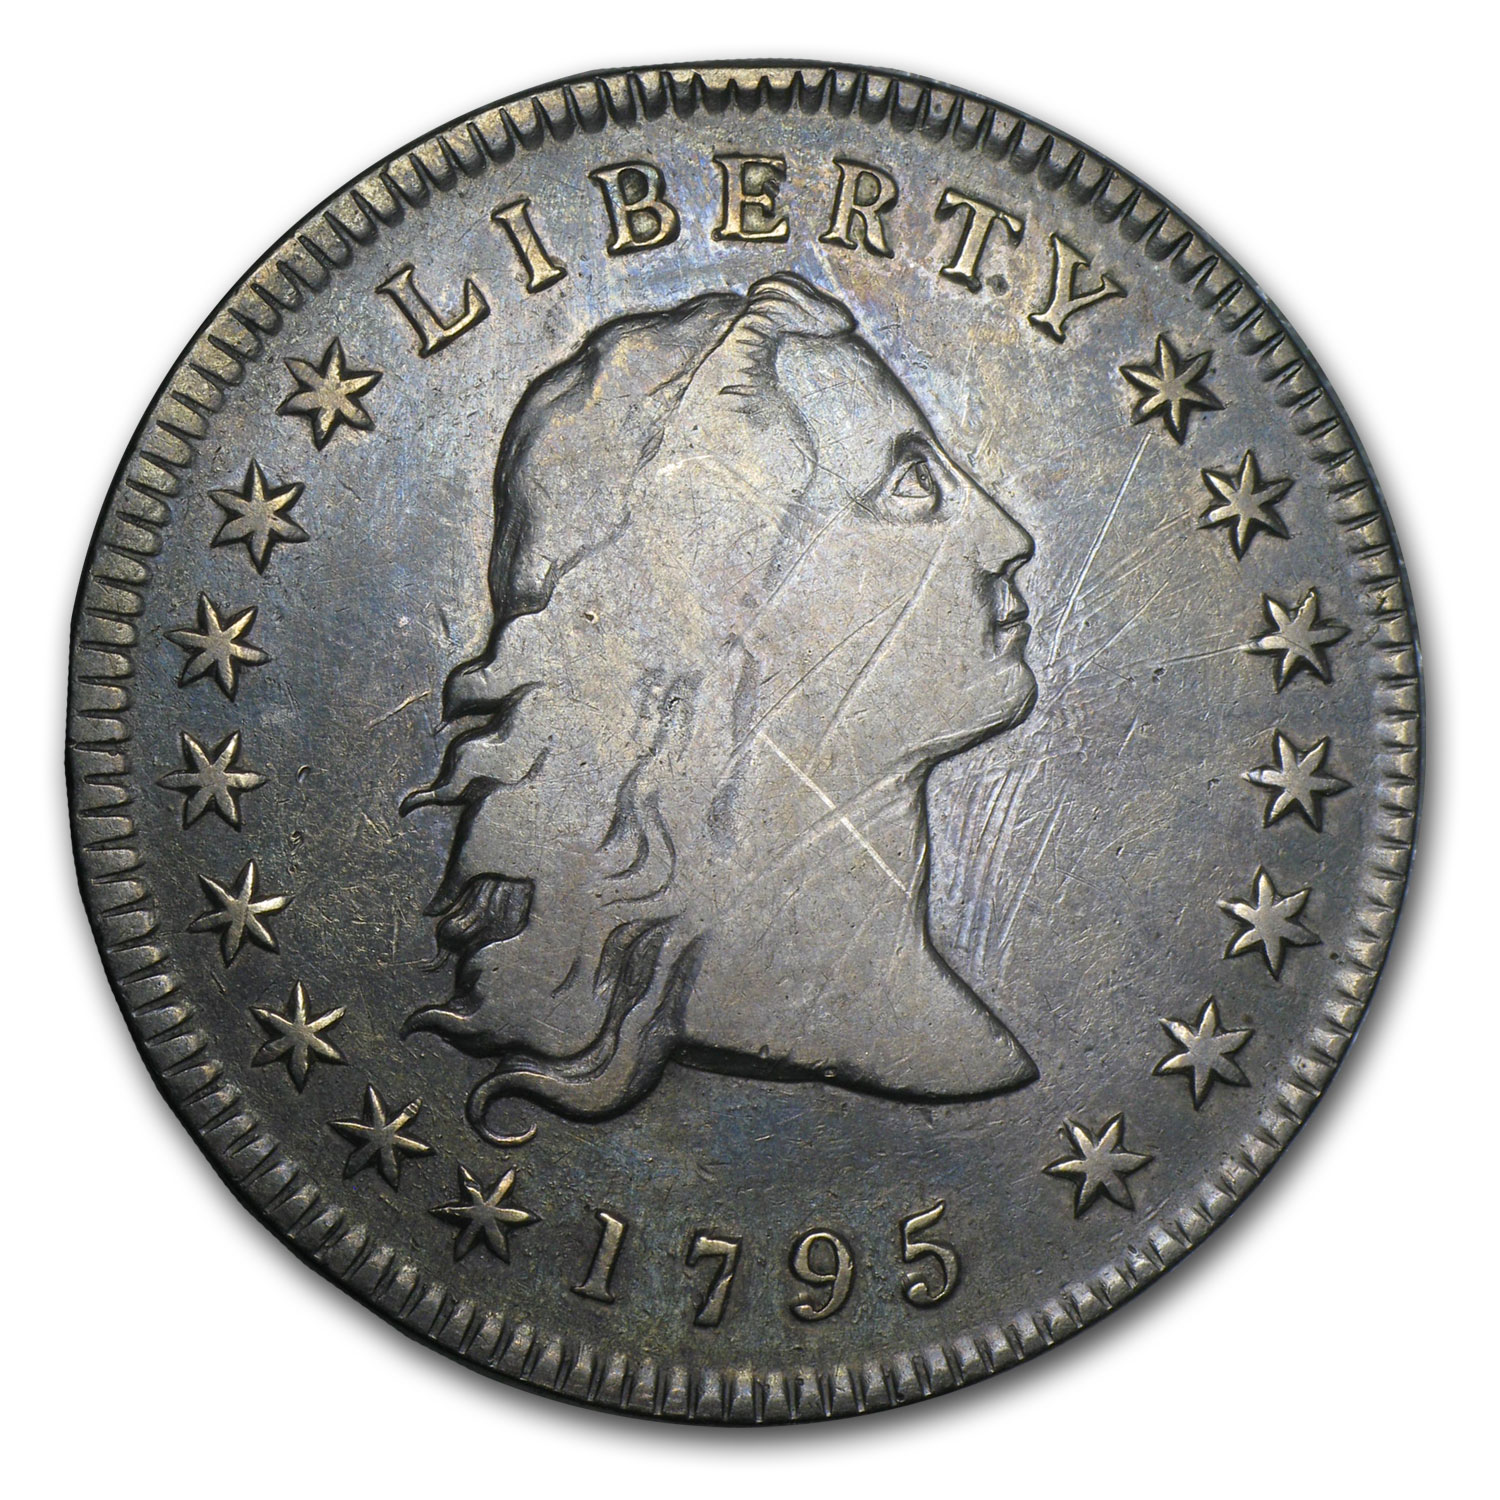 1795 Flowing Hair Dollar Very Fine Details - Scratched - 3 Leaves